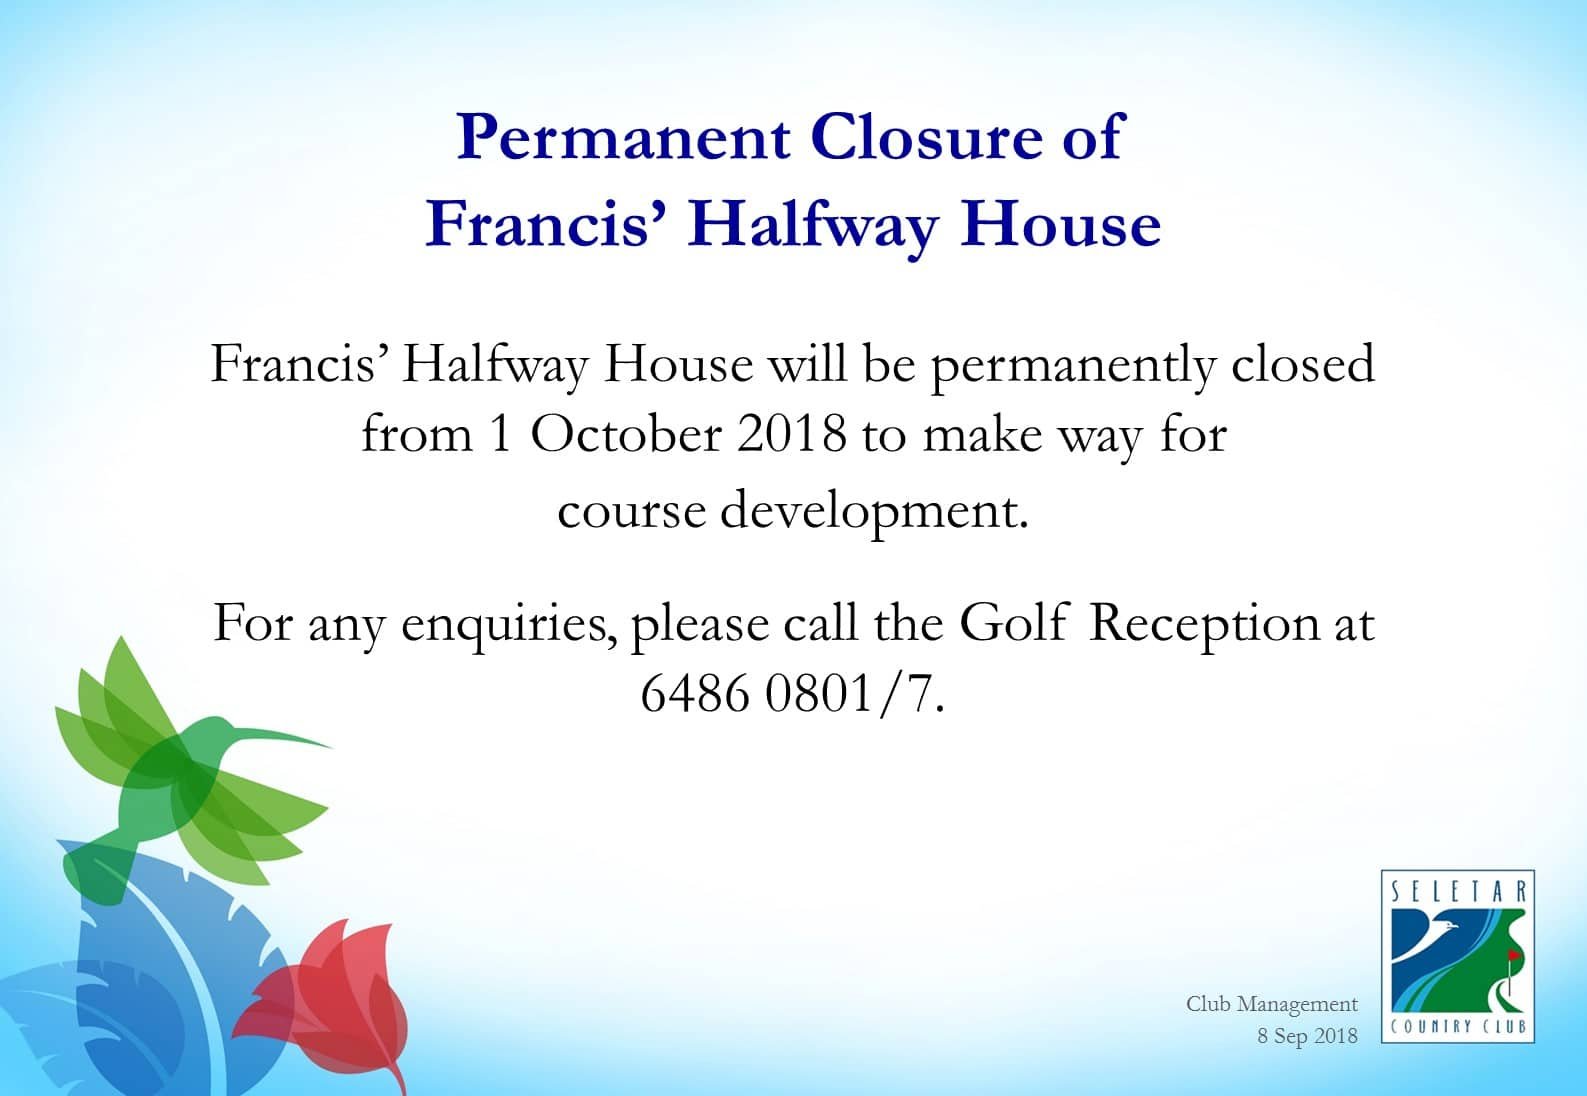 Permanent closure of francis halfway house_R1